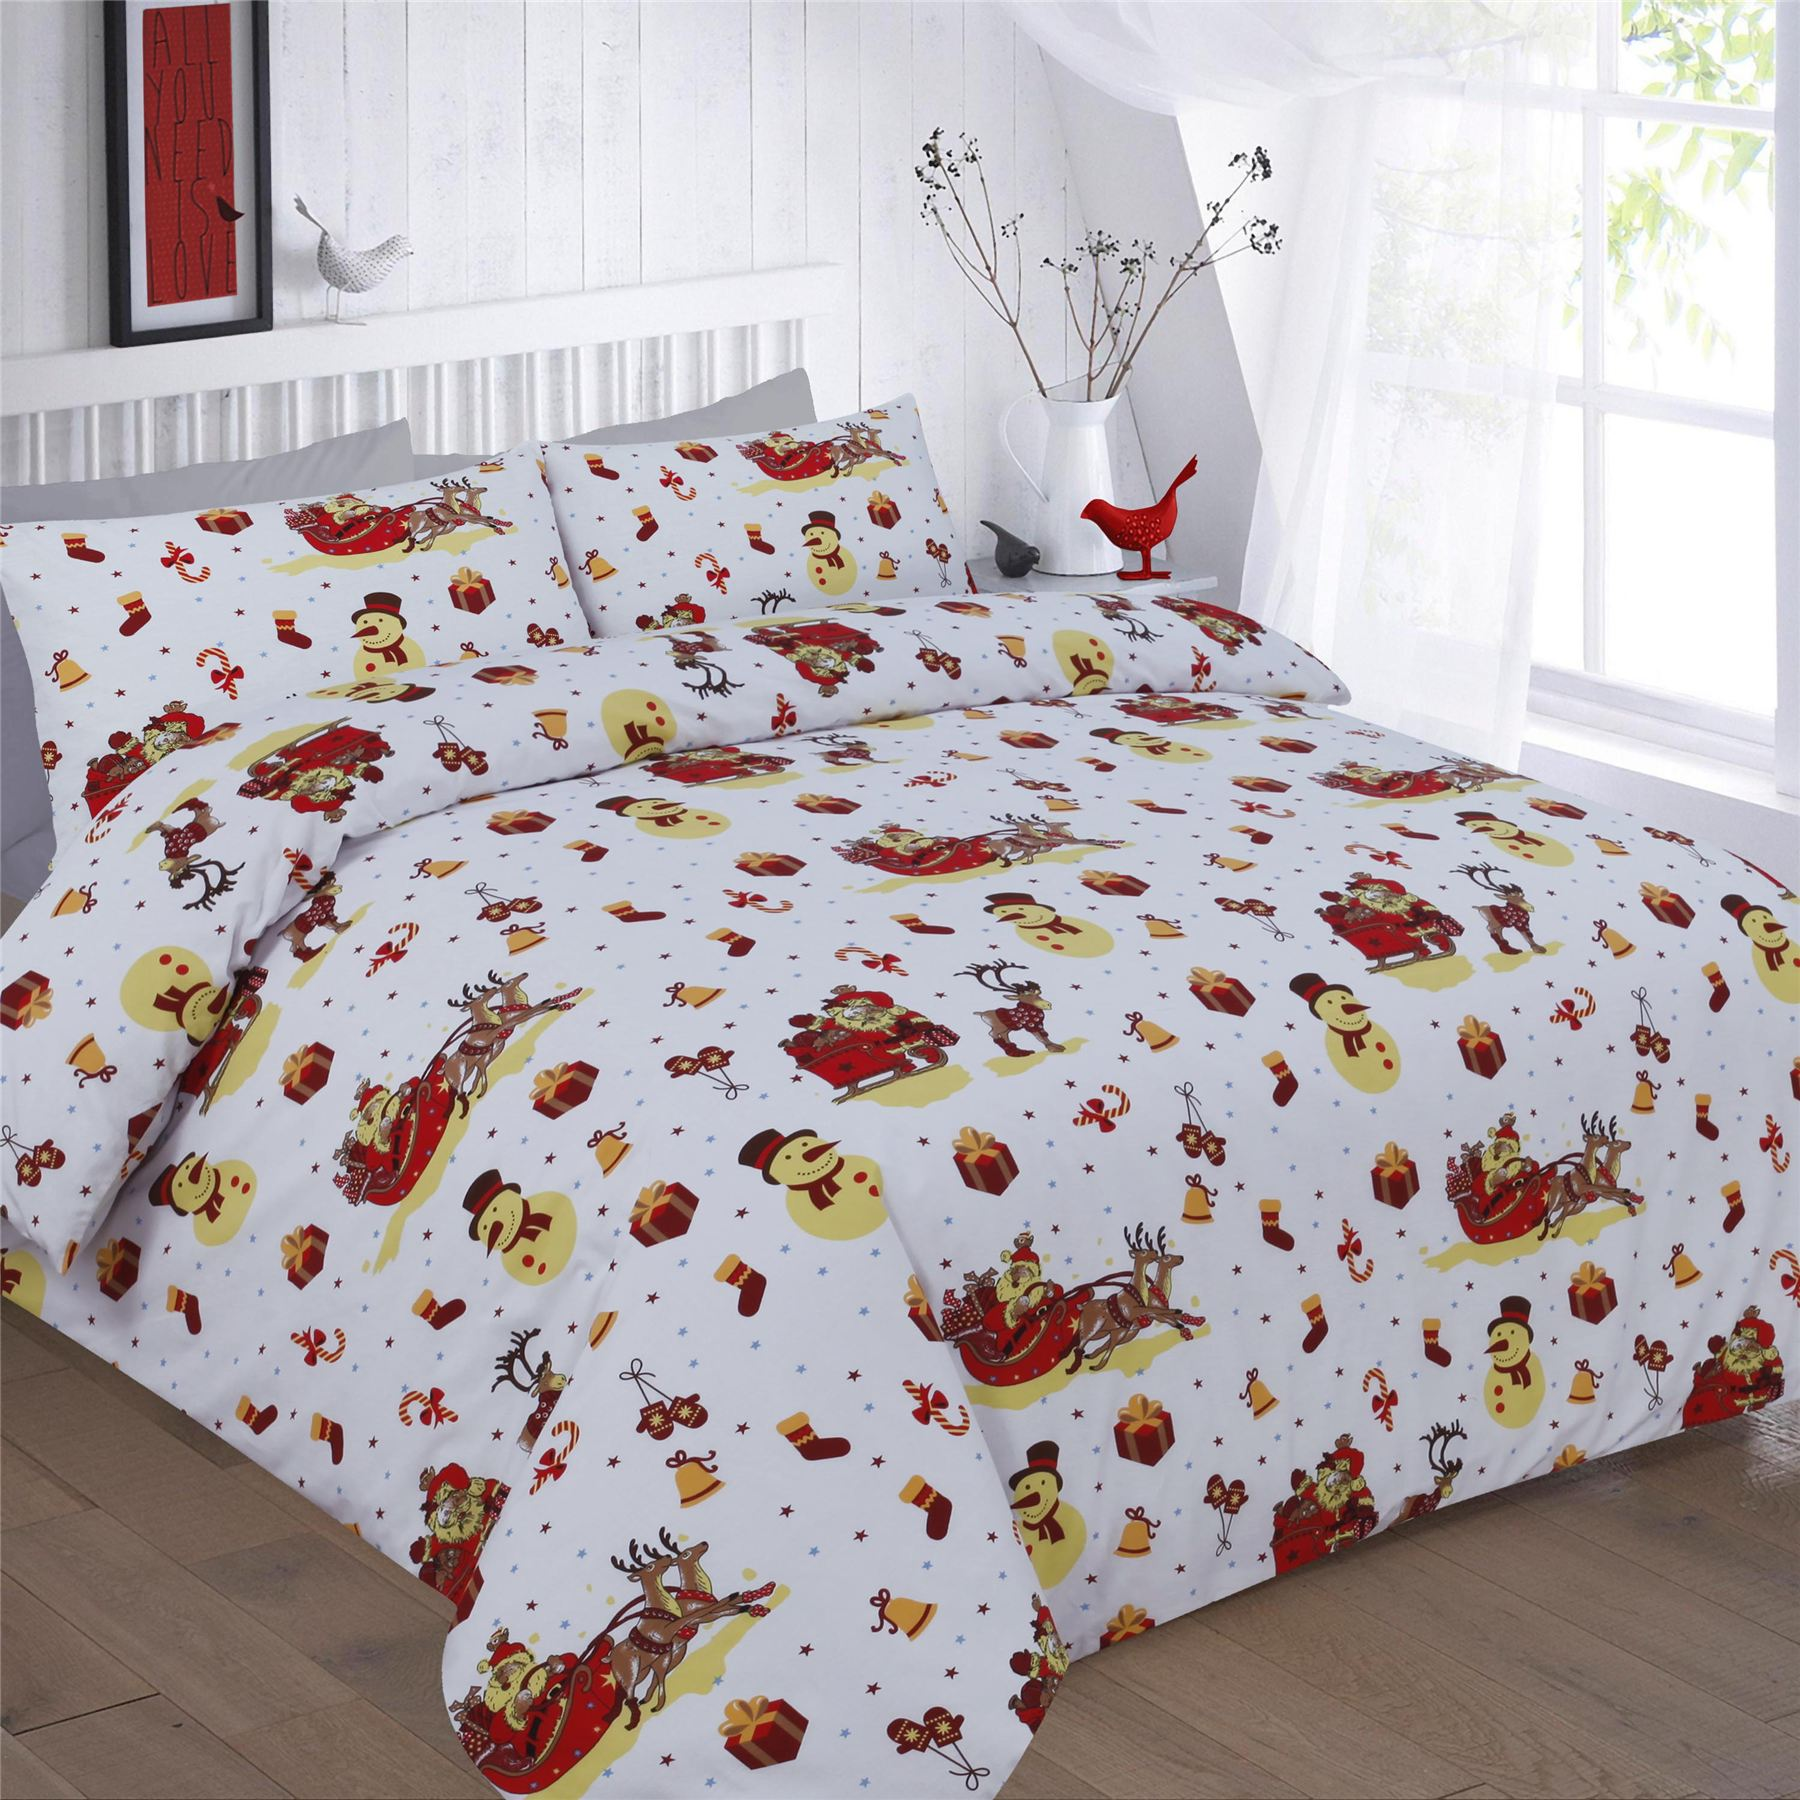 Christmas Duvet Cover Set with Pillow Shams Watercolor Fir Trees Print See more like this. Christmas Cats Duvet Cover Pillow Sham Twin Size Set New The Paragon See more like this. Zoomie Kids Flitwick Sascalia Christmas Tree Microfiber Duvet Covers. Direct from Wayfair. Brand New.